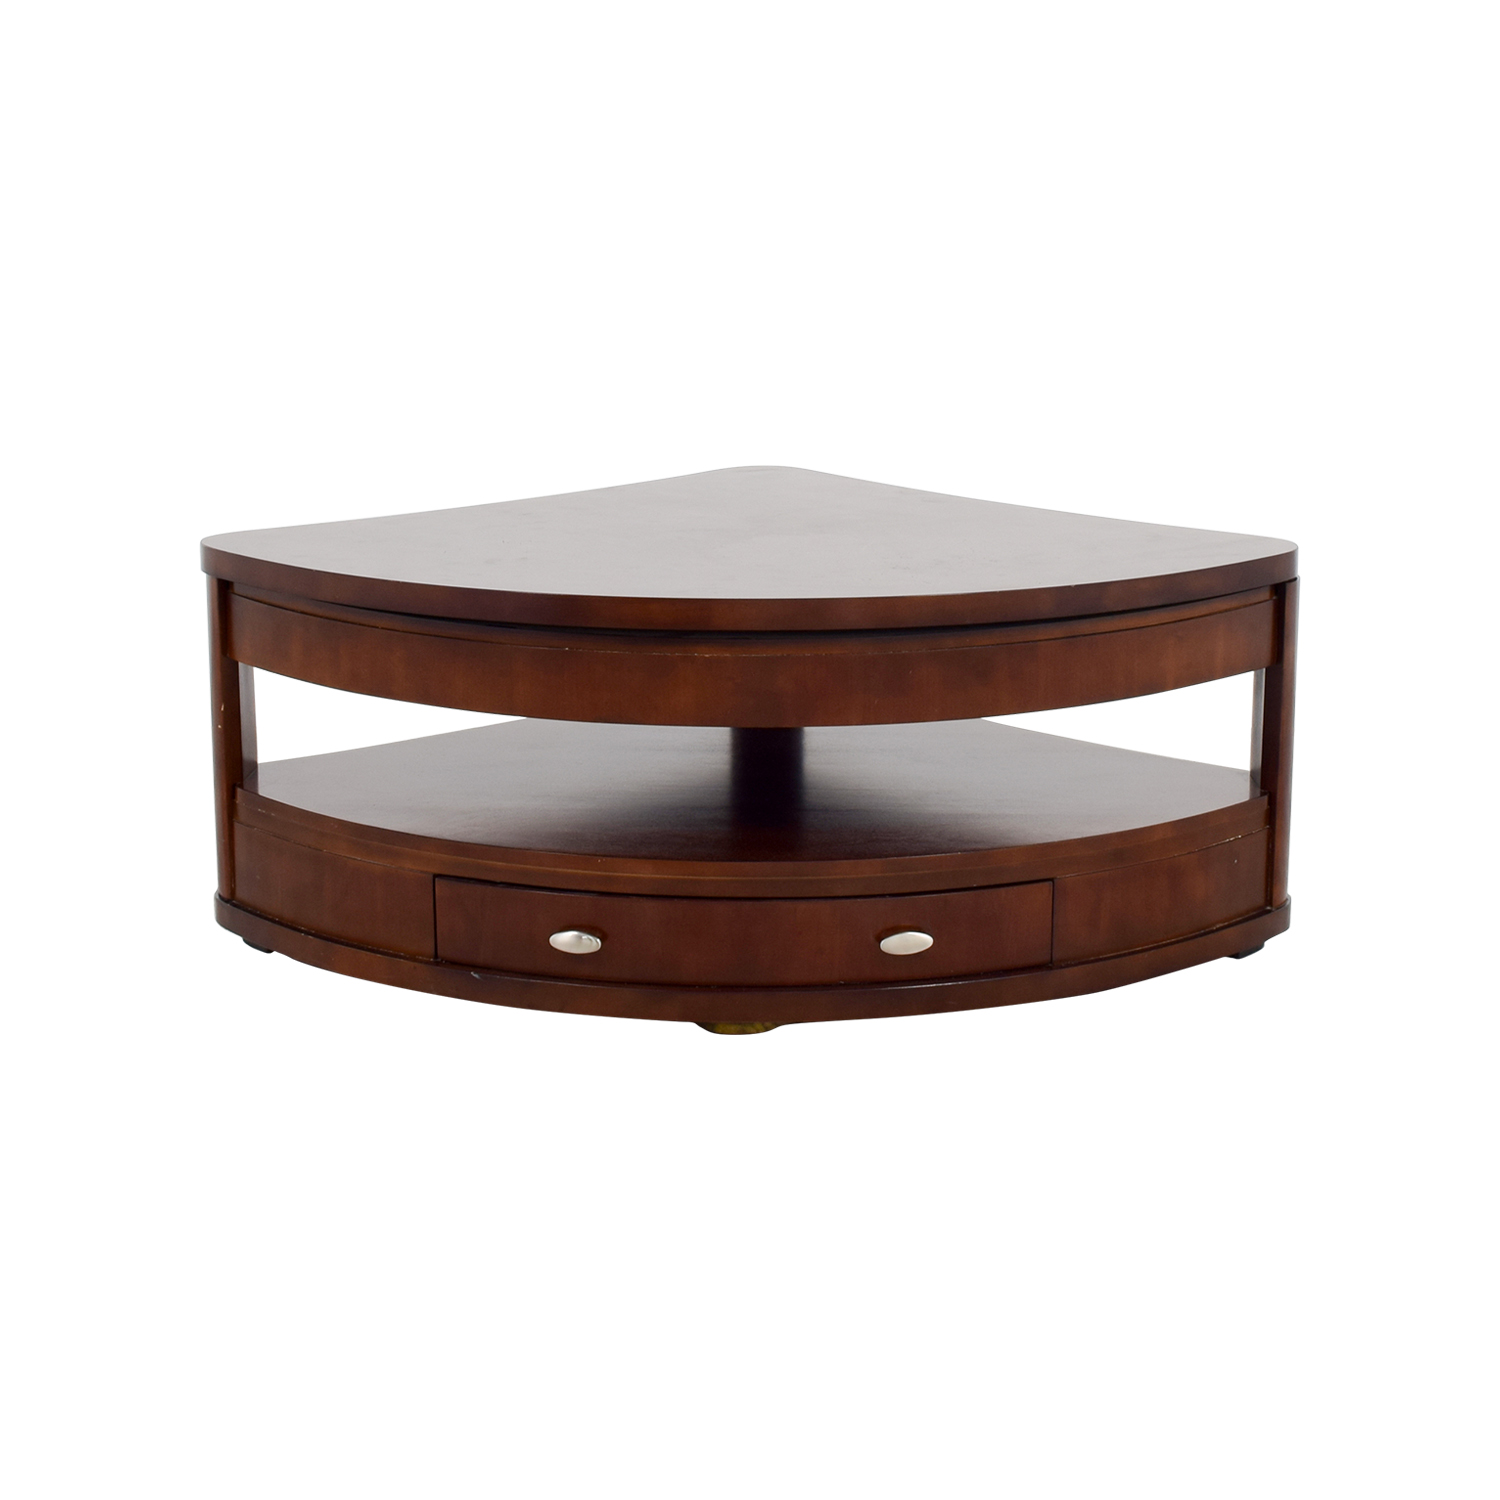 OFF Triangular Rounded Lift top Coffee Table Tables